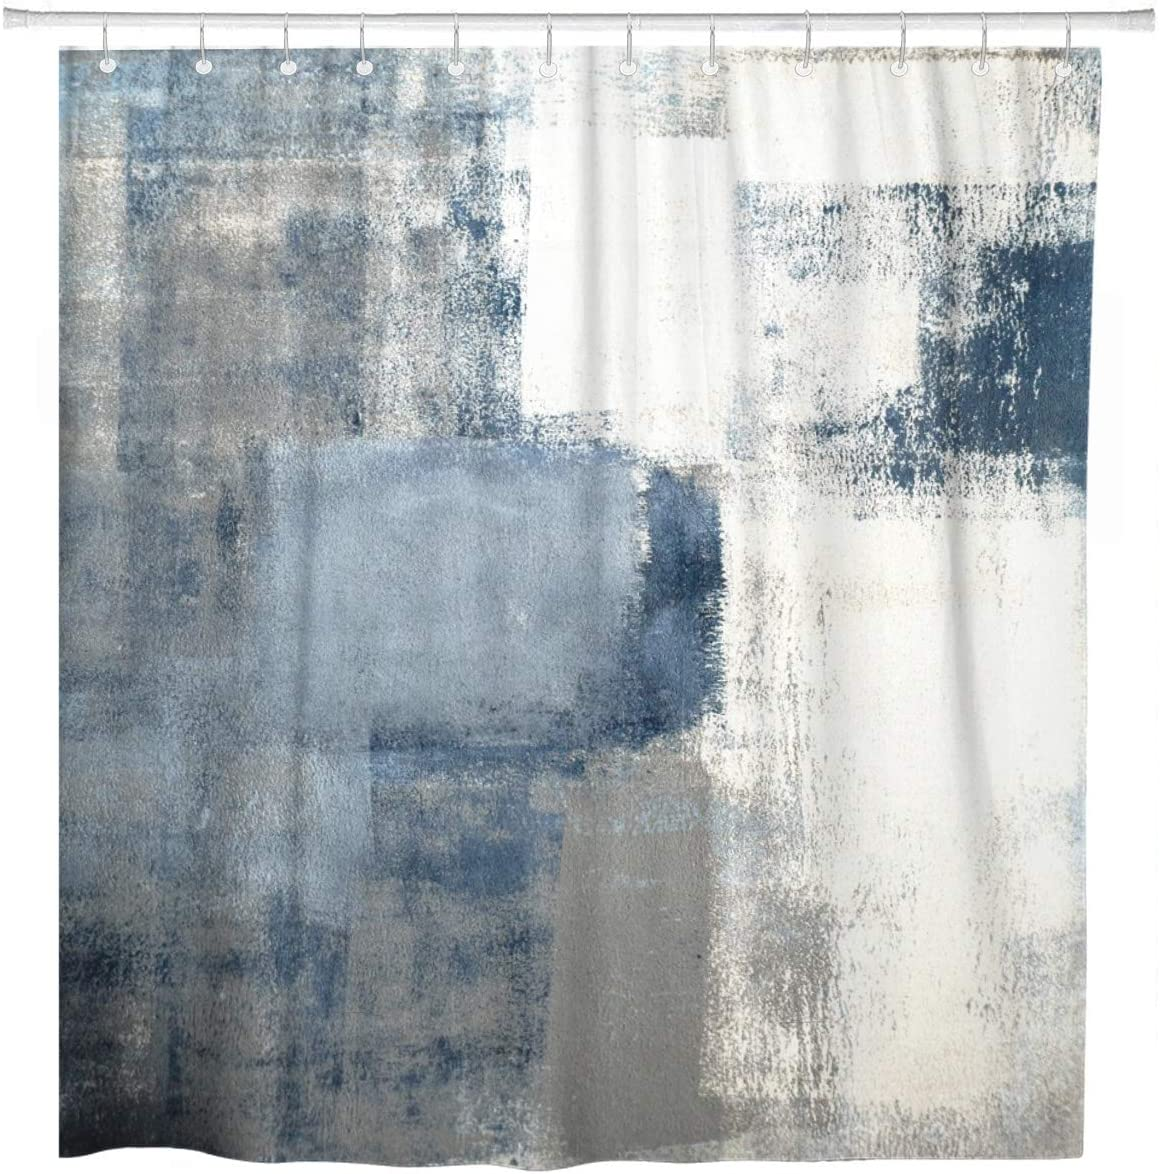 Amazon.com: ArtSocket Shower Curtain Gray Contemporary Blue And Grey Abstract Painting Home Bathroom Decor Polyester Fabric Waterproof 72 X 78 Inches Set With Hooks: Home & Kitchen